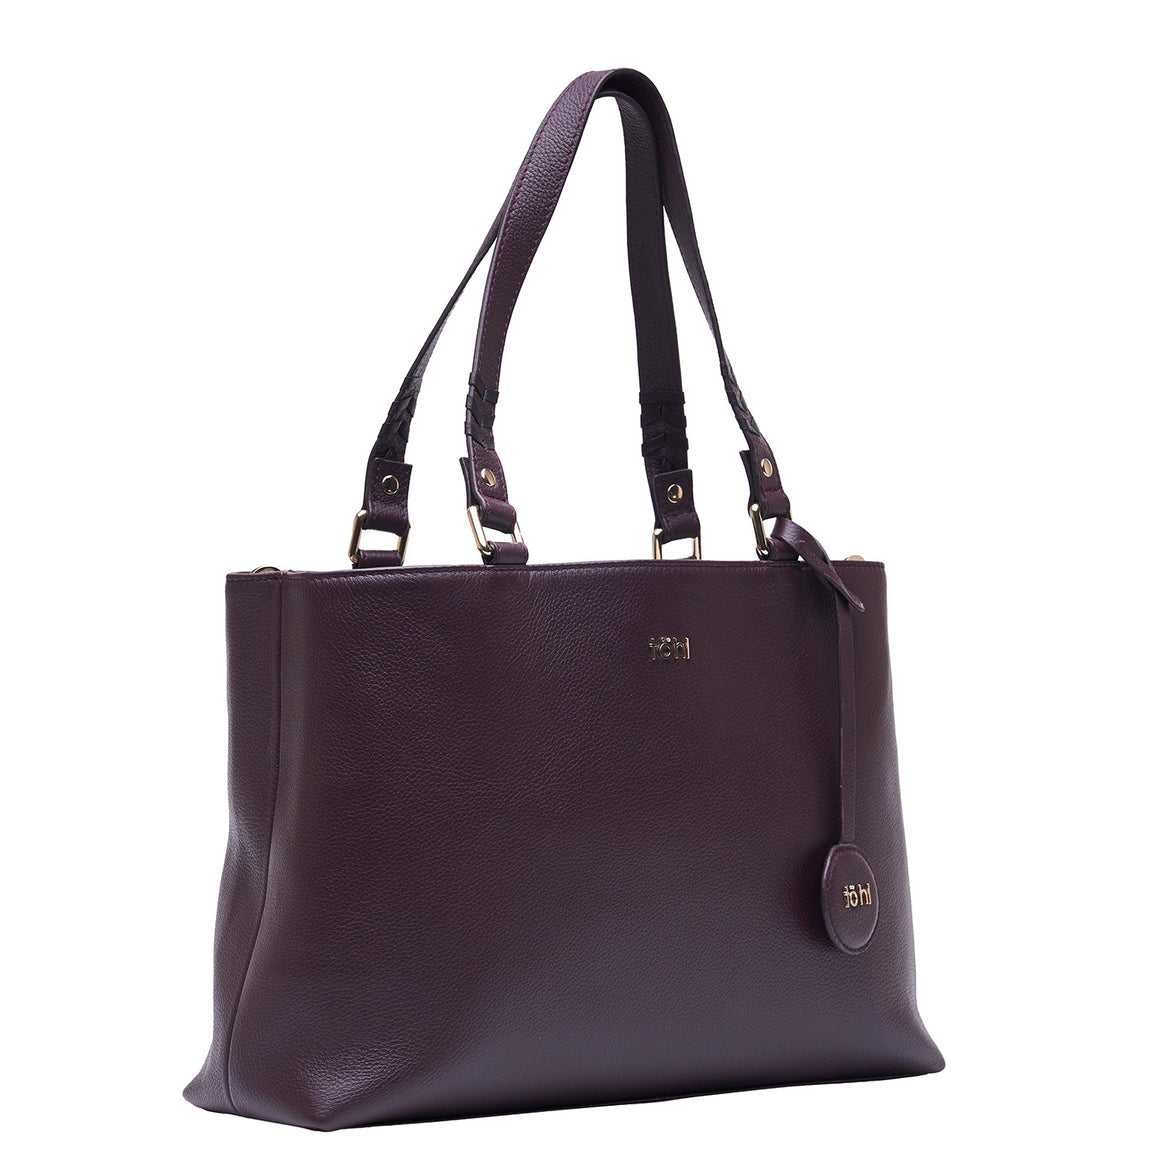 TT 0014 - TOHL FABLE WOMEN'S TOTE BAG - PLUM